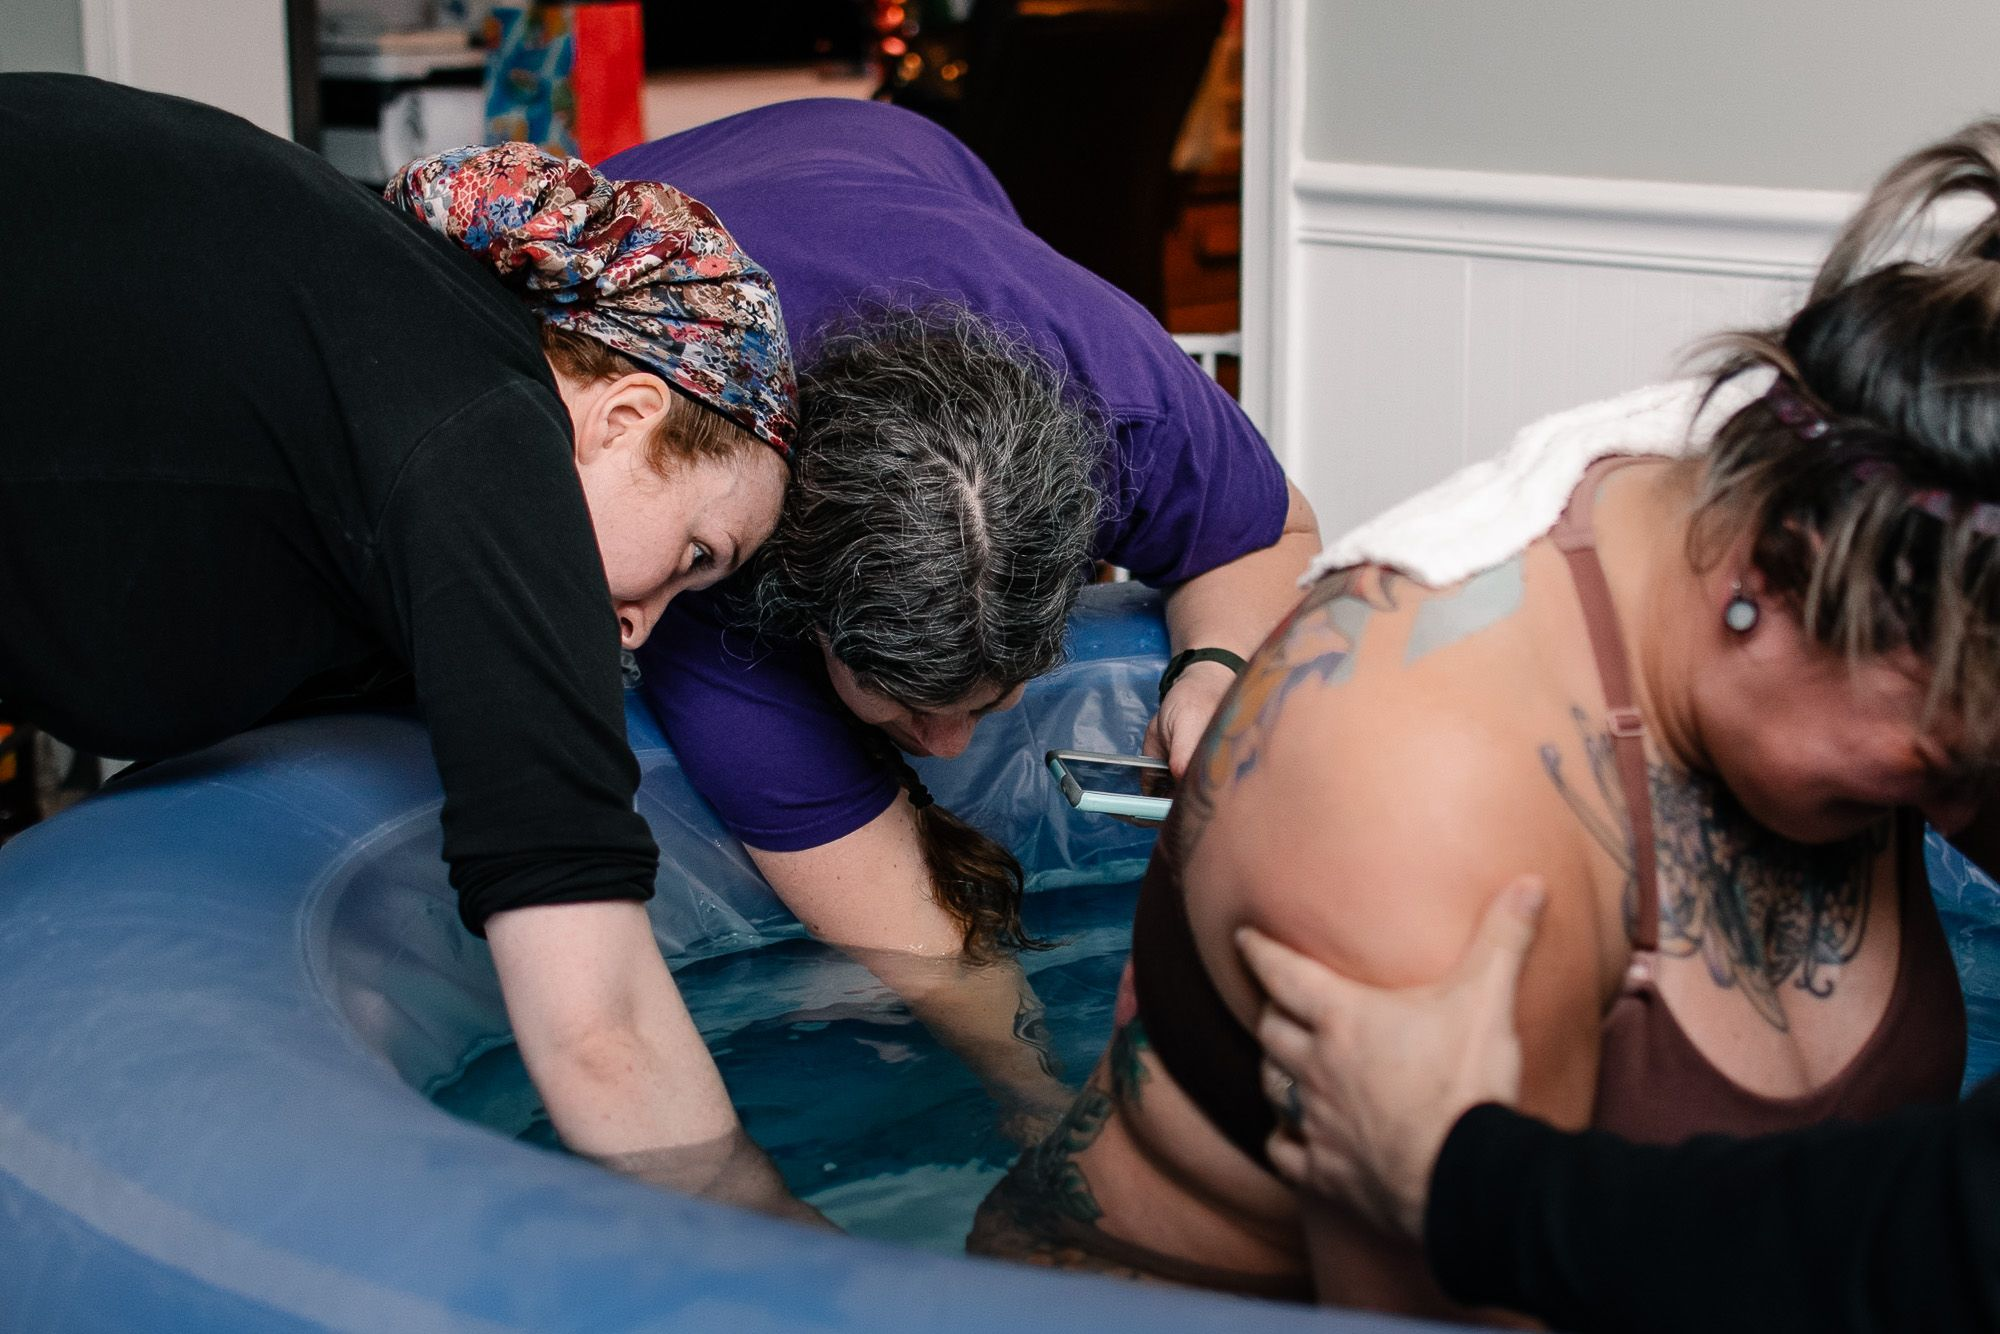 2 maryland midwives assisting woman in birthing pool during home birth